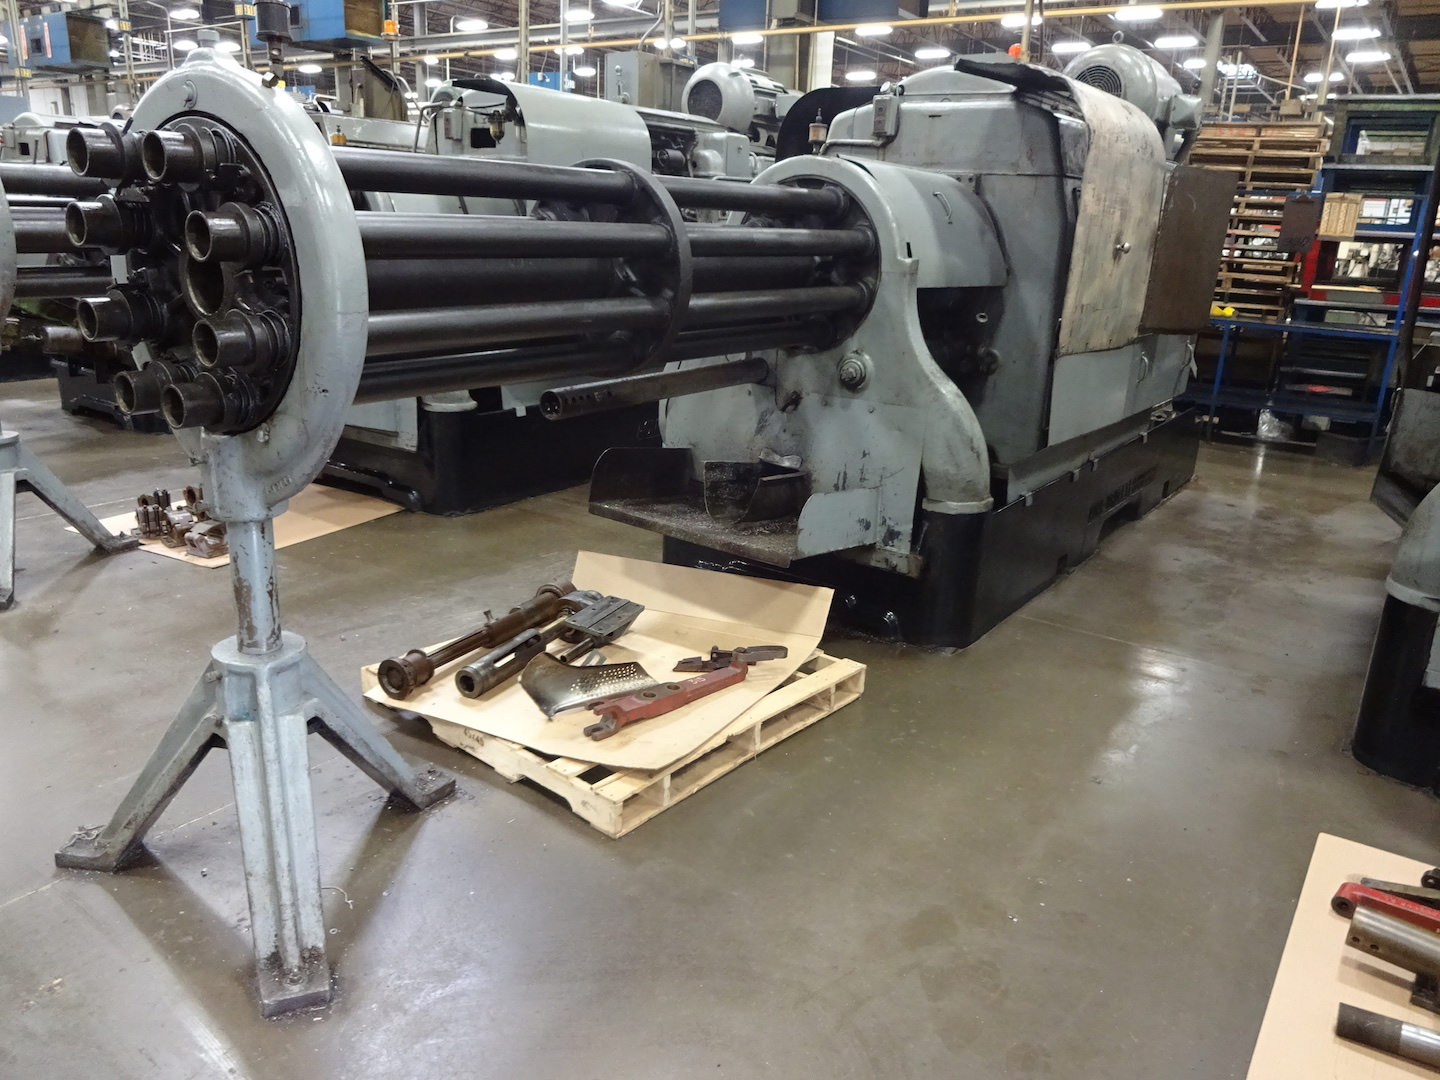 "Lot 6 - ACME-GRIDLEY 2-5/8"" MODEL RB-8 8-SPINDLE AUTOMATIC SCREW MACHINE"